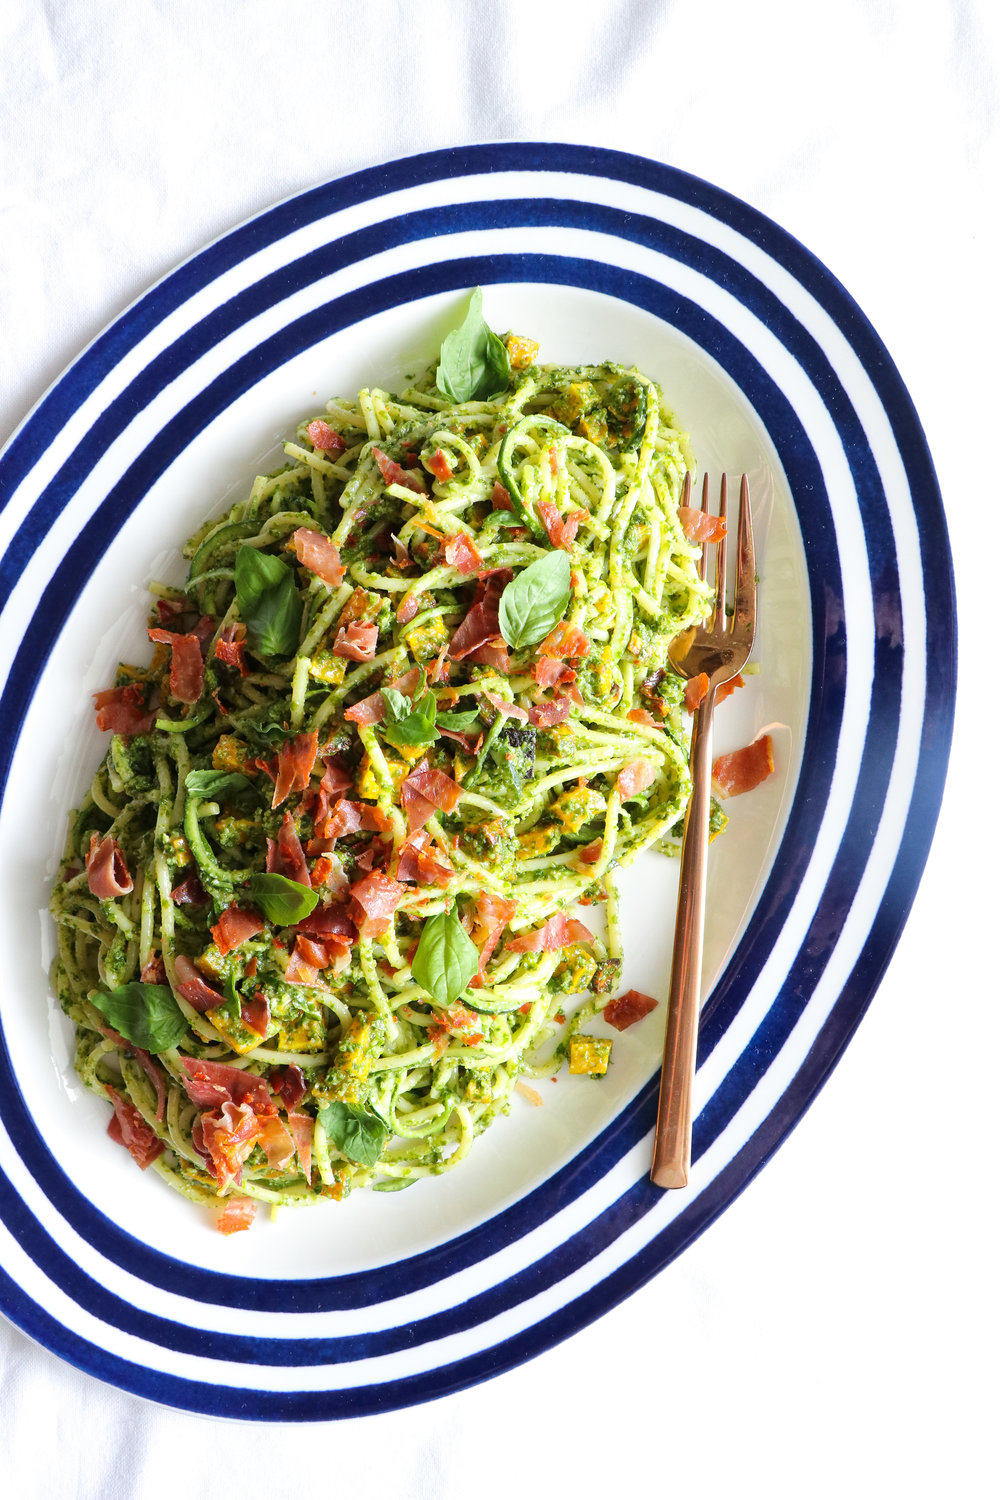 Zoodles with nut-free pesto